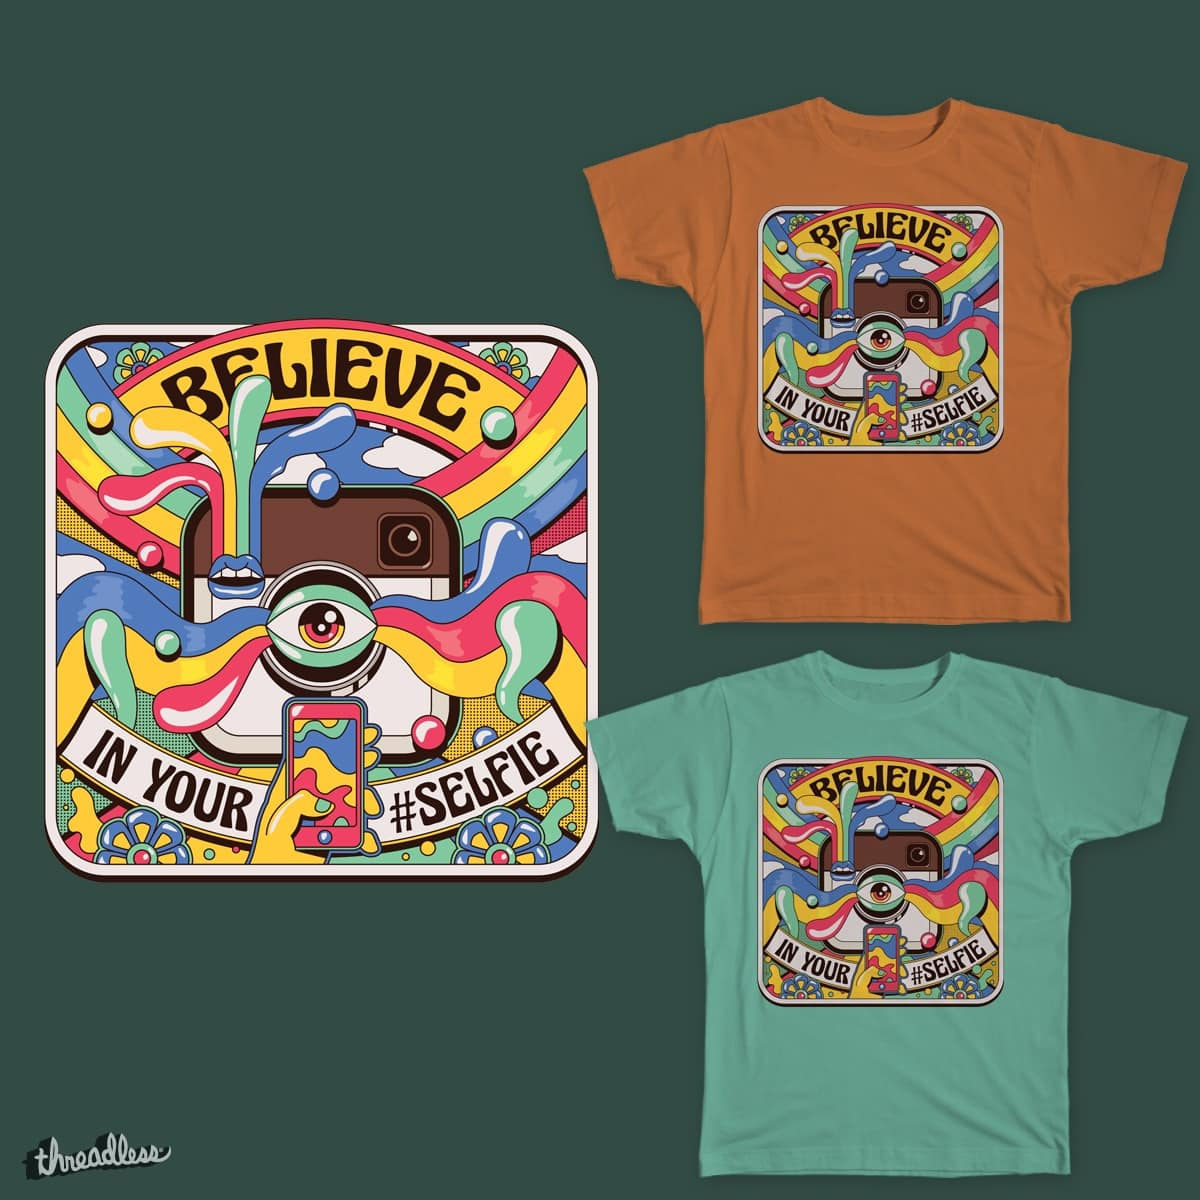 Believe in your Selfie by roberlanborges78 on Threadless